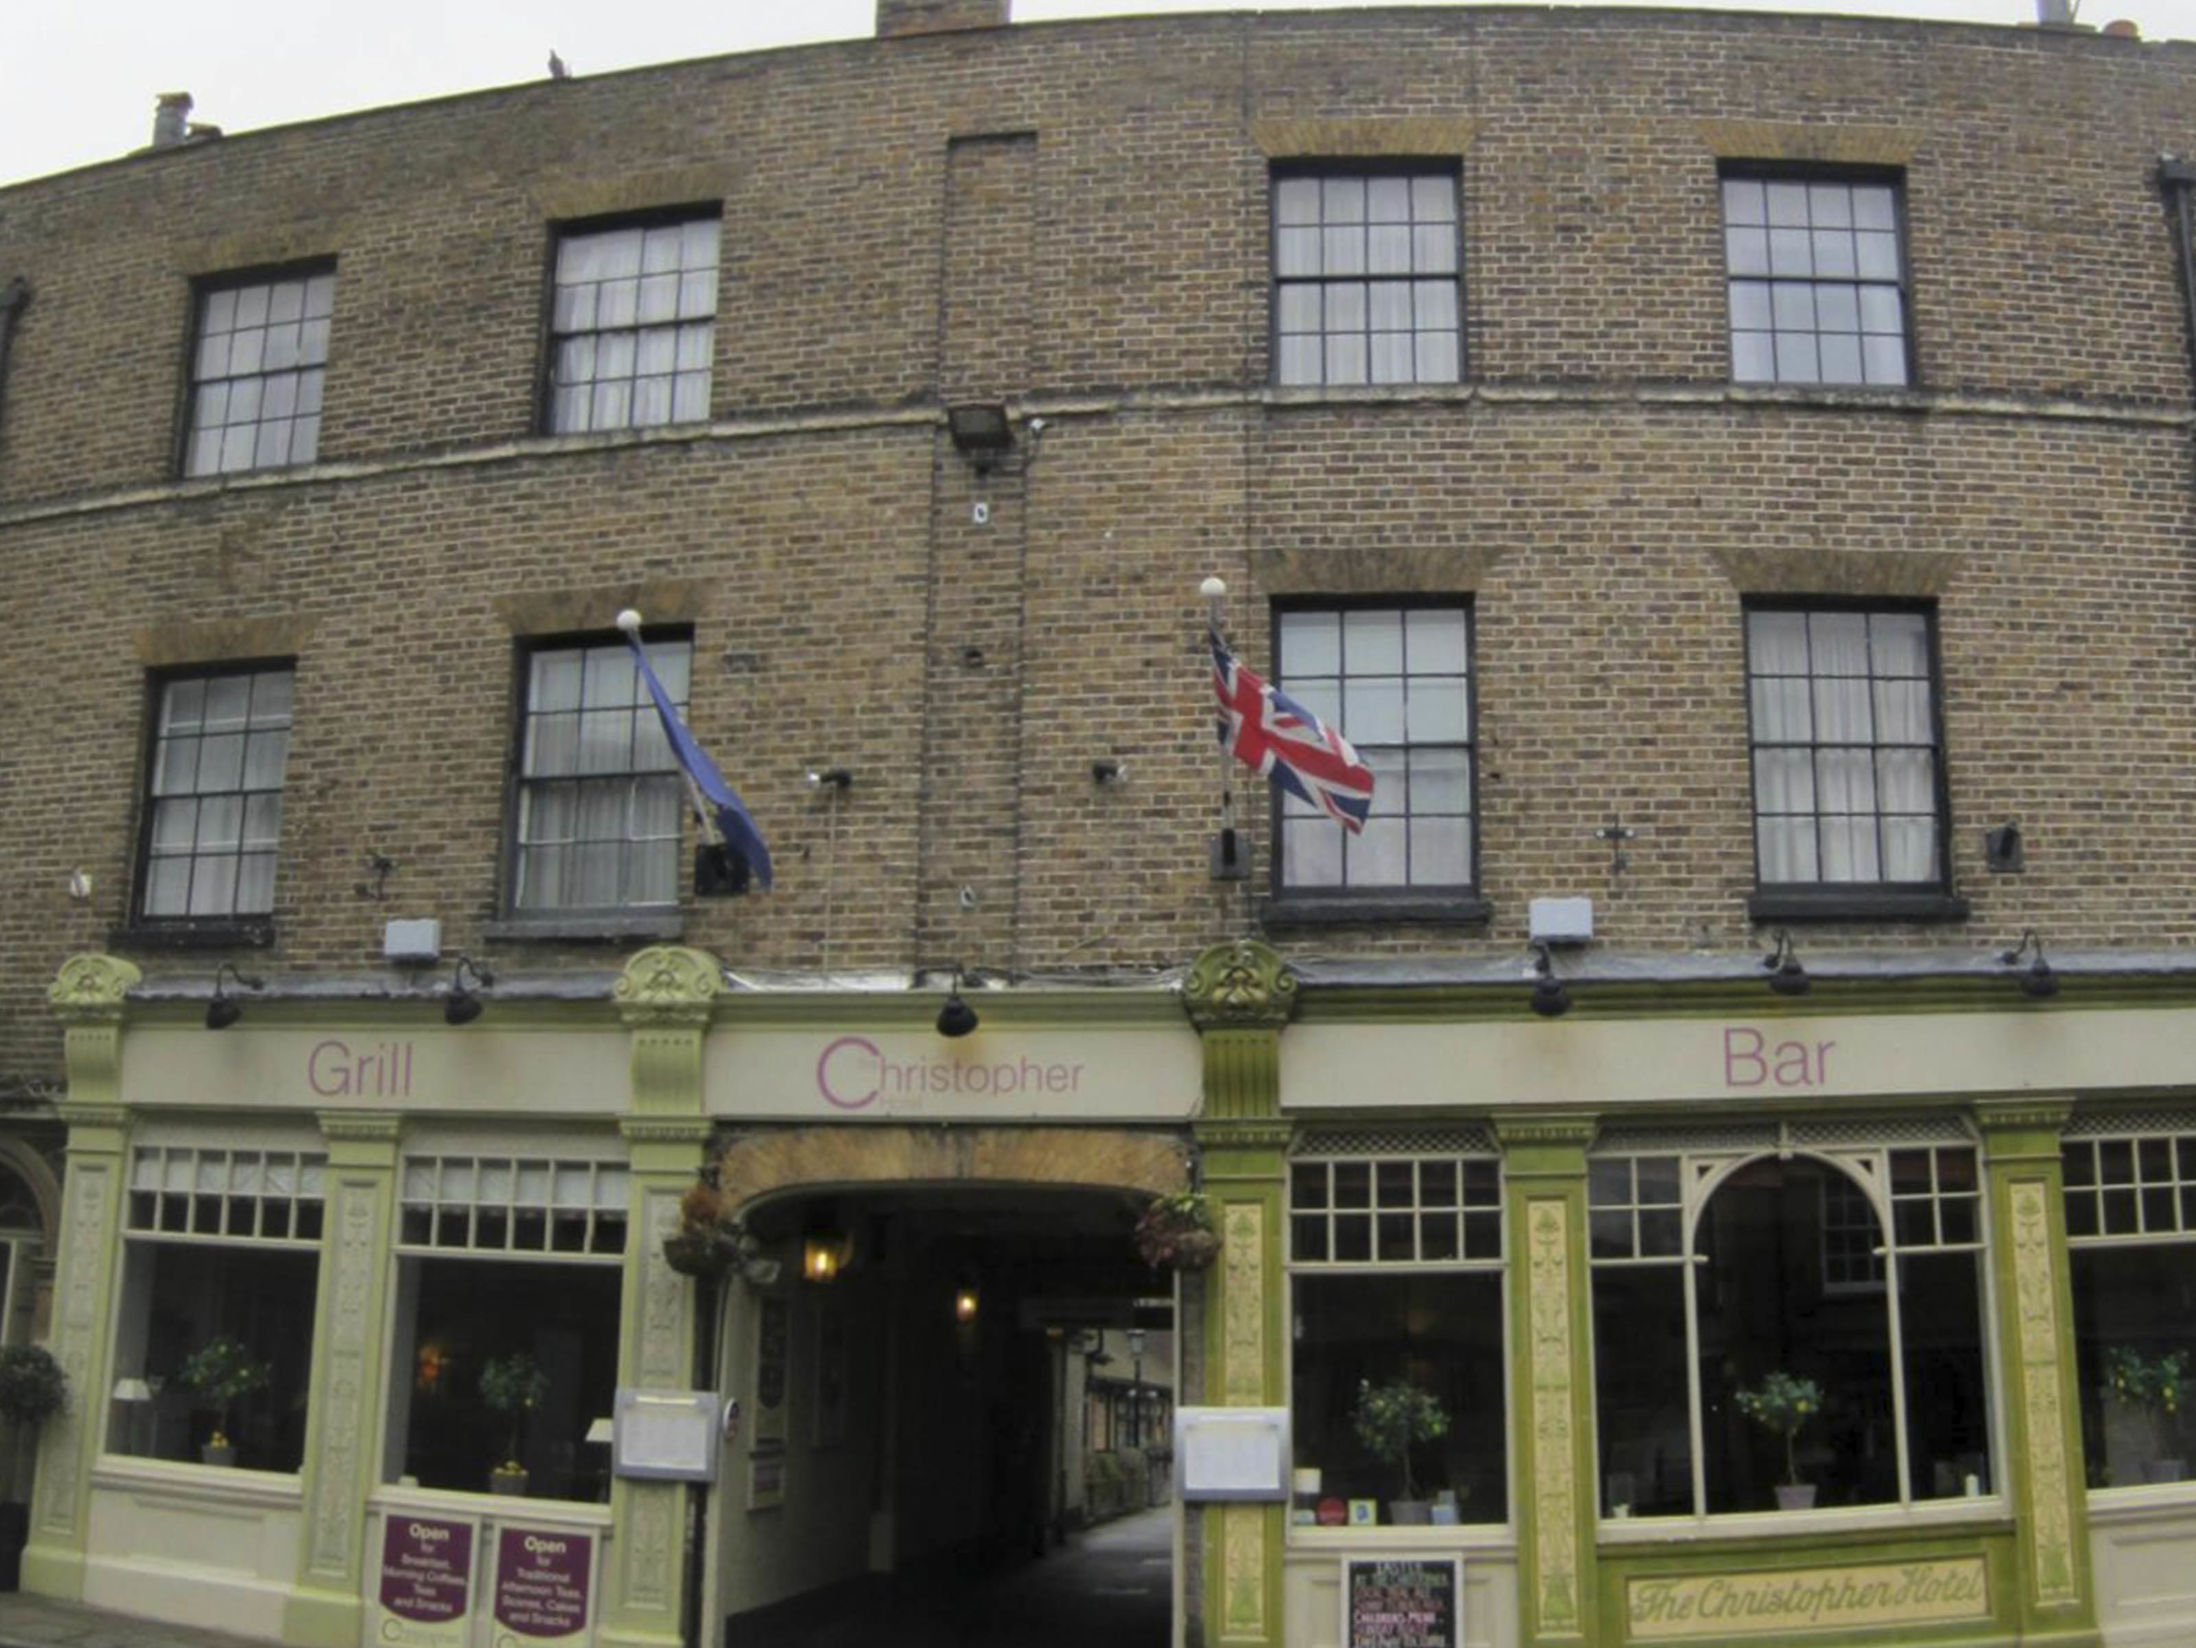 Cheap Hotels in Windsor - The Christopher